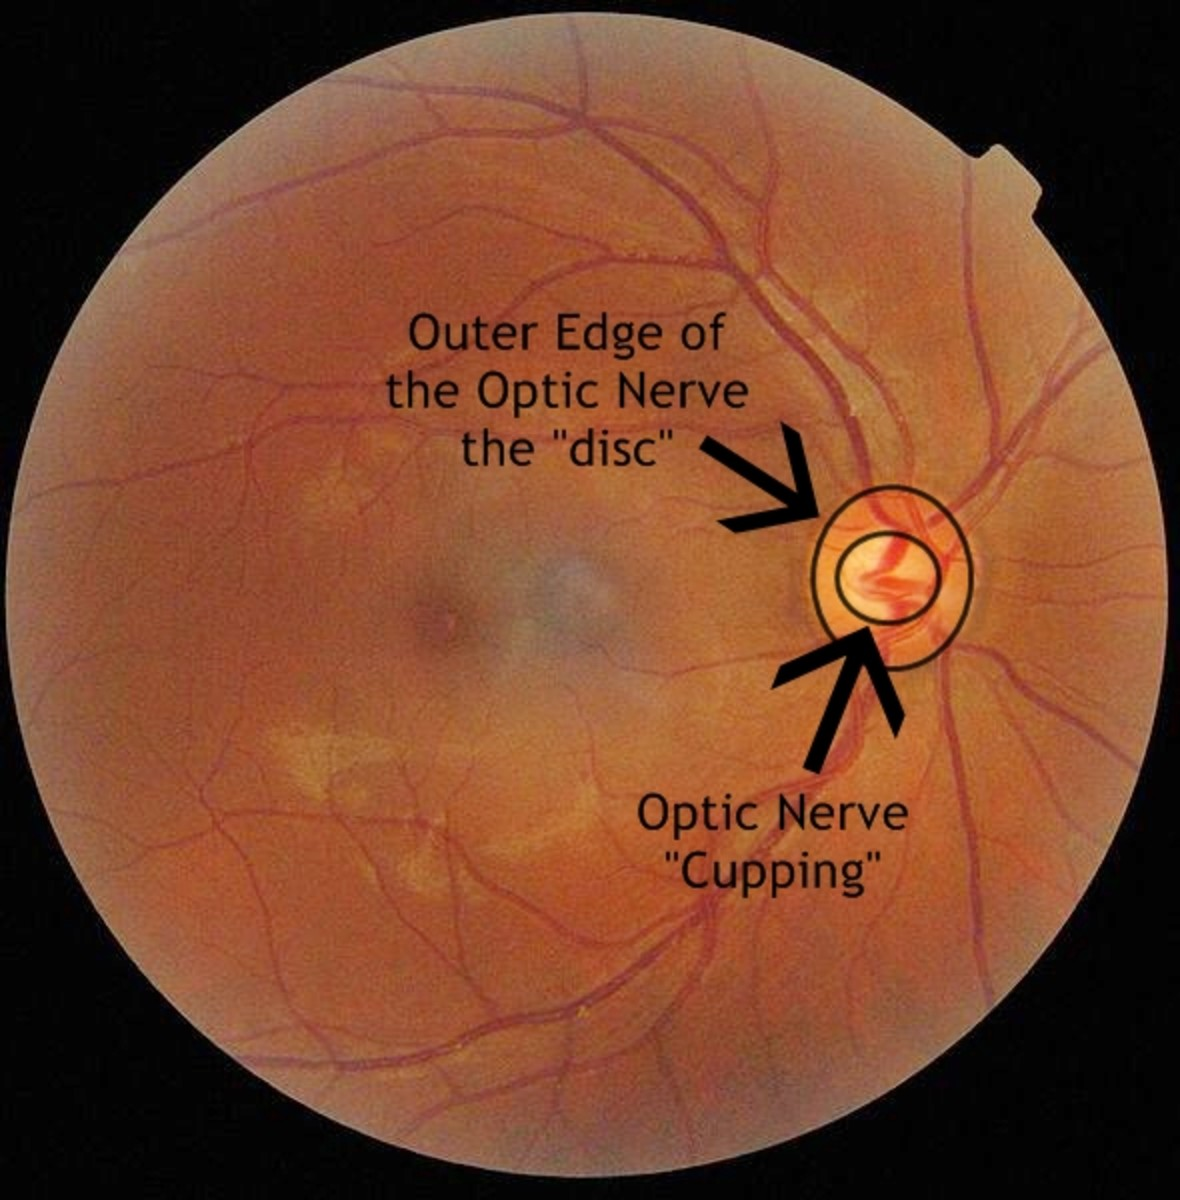 Increased pressure in the eye causes cupping of the optic nerve. Think of the optic nerve as a doughnut with the center hole being the cupping. Increased pressure in the eye causes that doughnut hole to grow, permanently damaging nerve fibers.